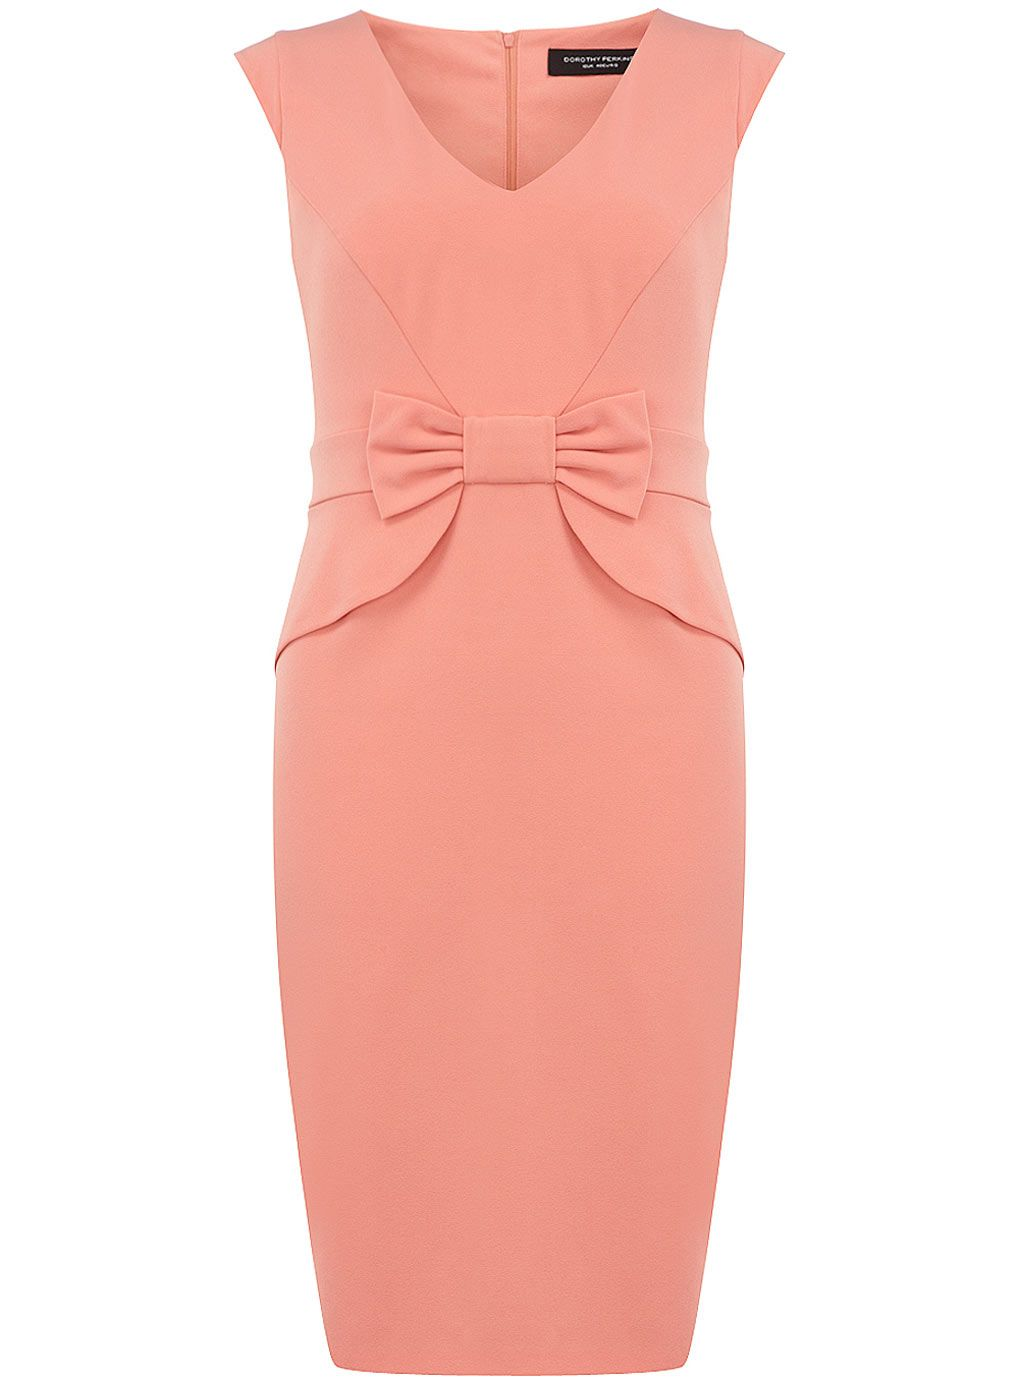 cb6f9e585bf Robe corail style Milly avec nœud - Voir tout - Robes - Dorothy Perkins  France